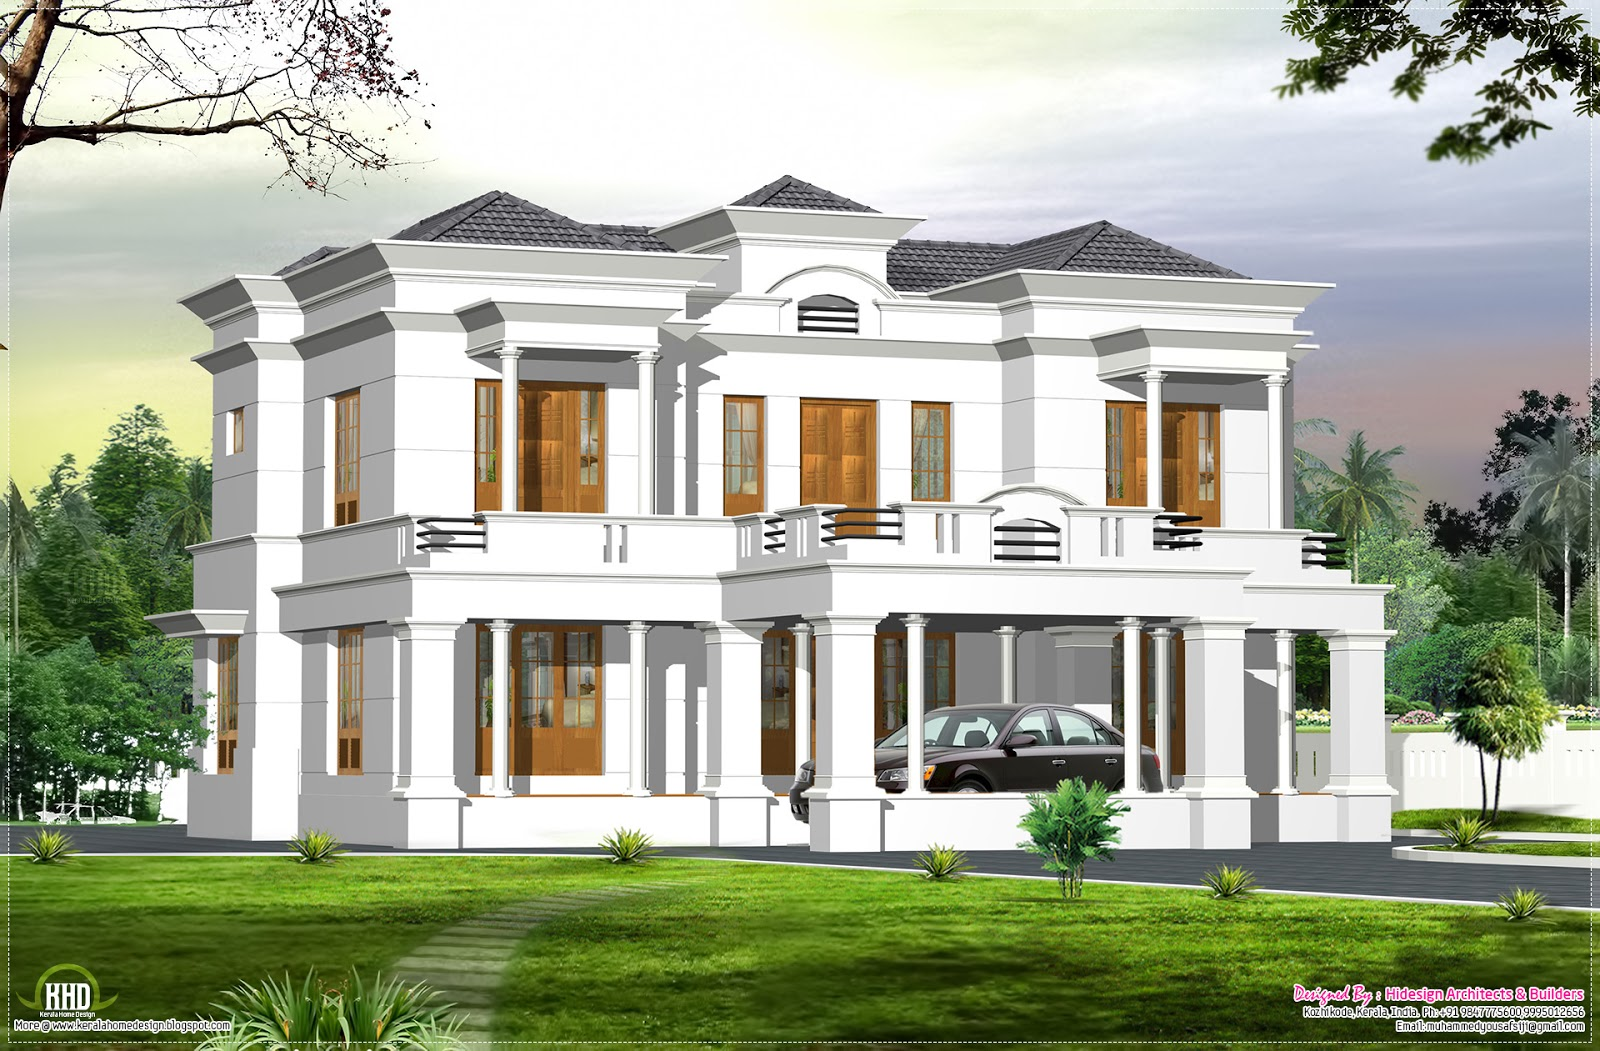 An english style 4 bedroom kerala bungalow home elevation for 4 bedroom kerala house plans and elevations